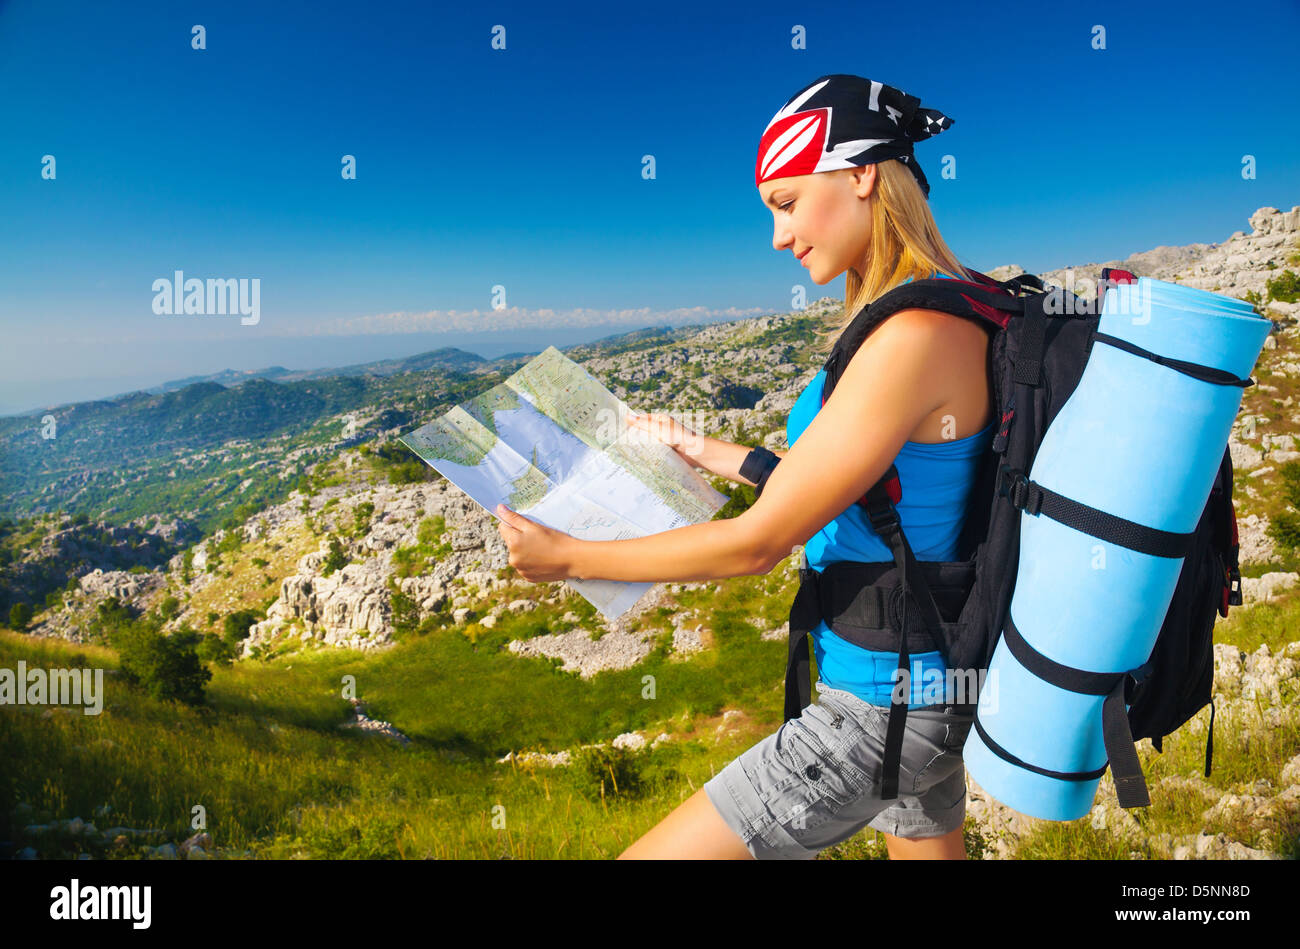 Young sporty woman standing on the peak on mountain watching on map, extreme adventure, happiness and freedom concept - Stock Image